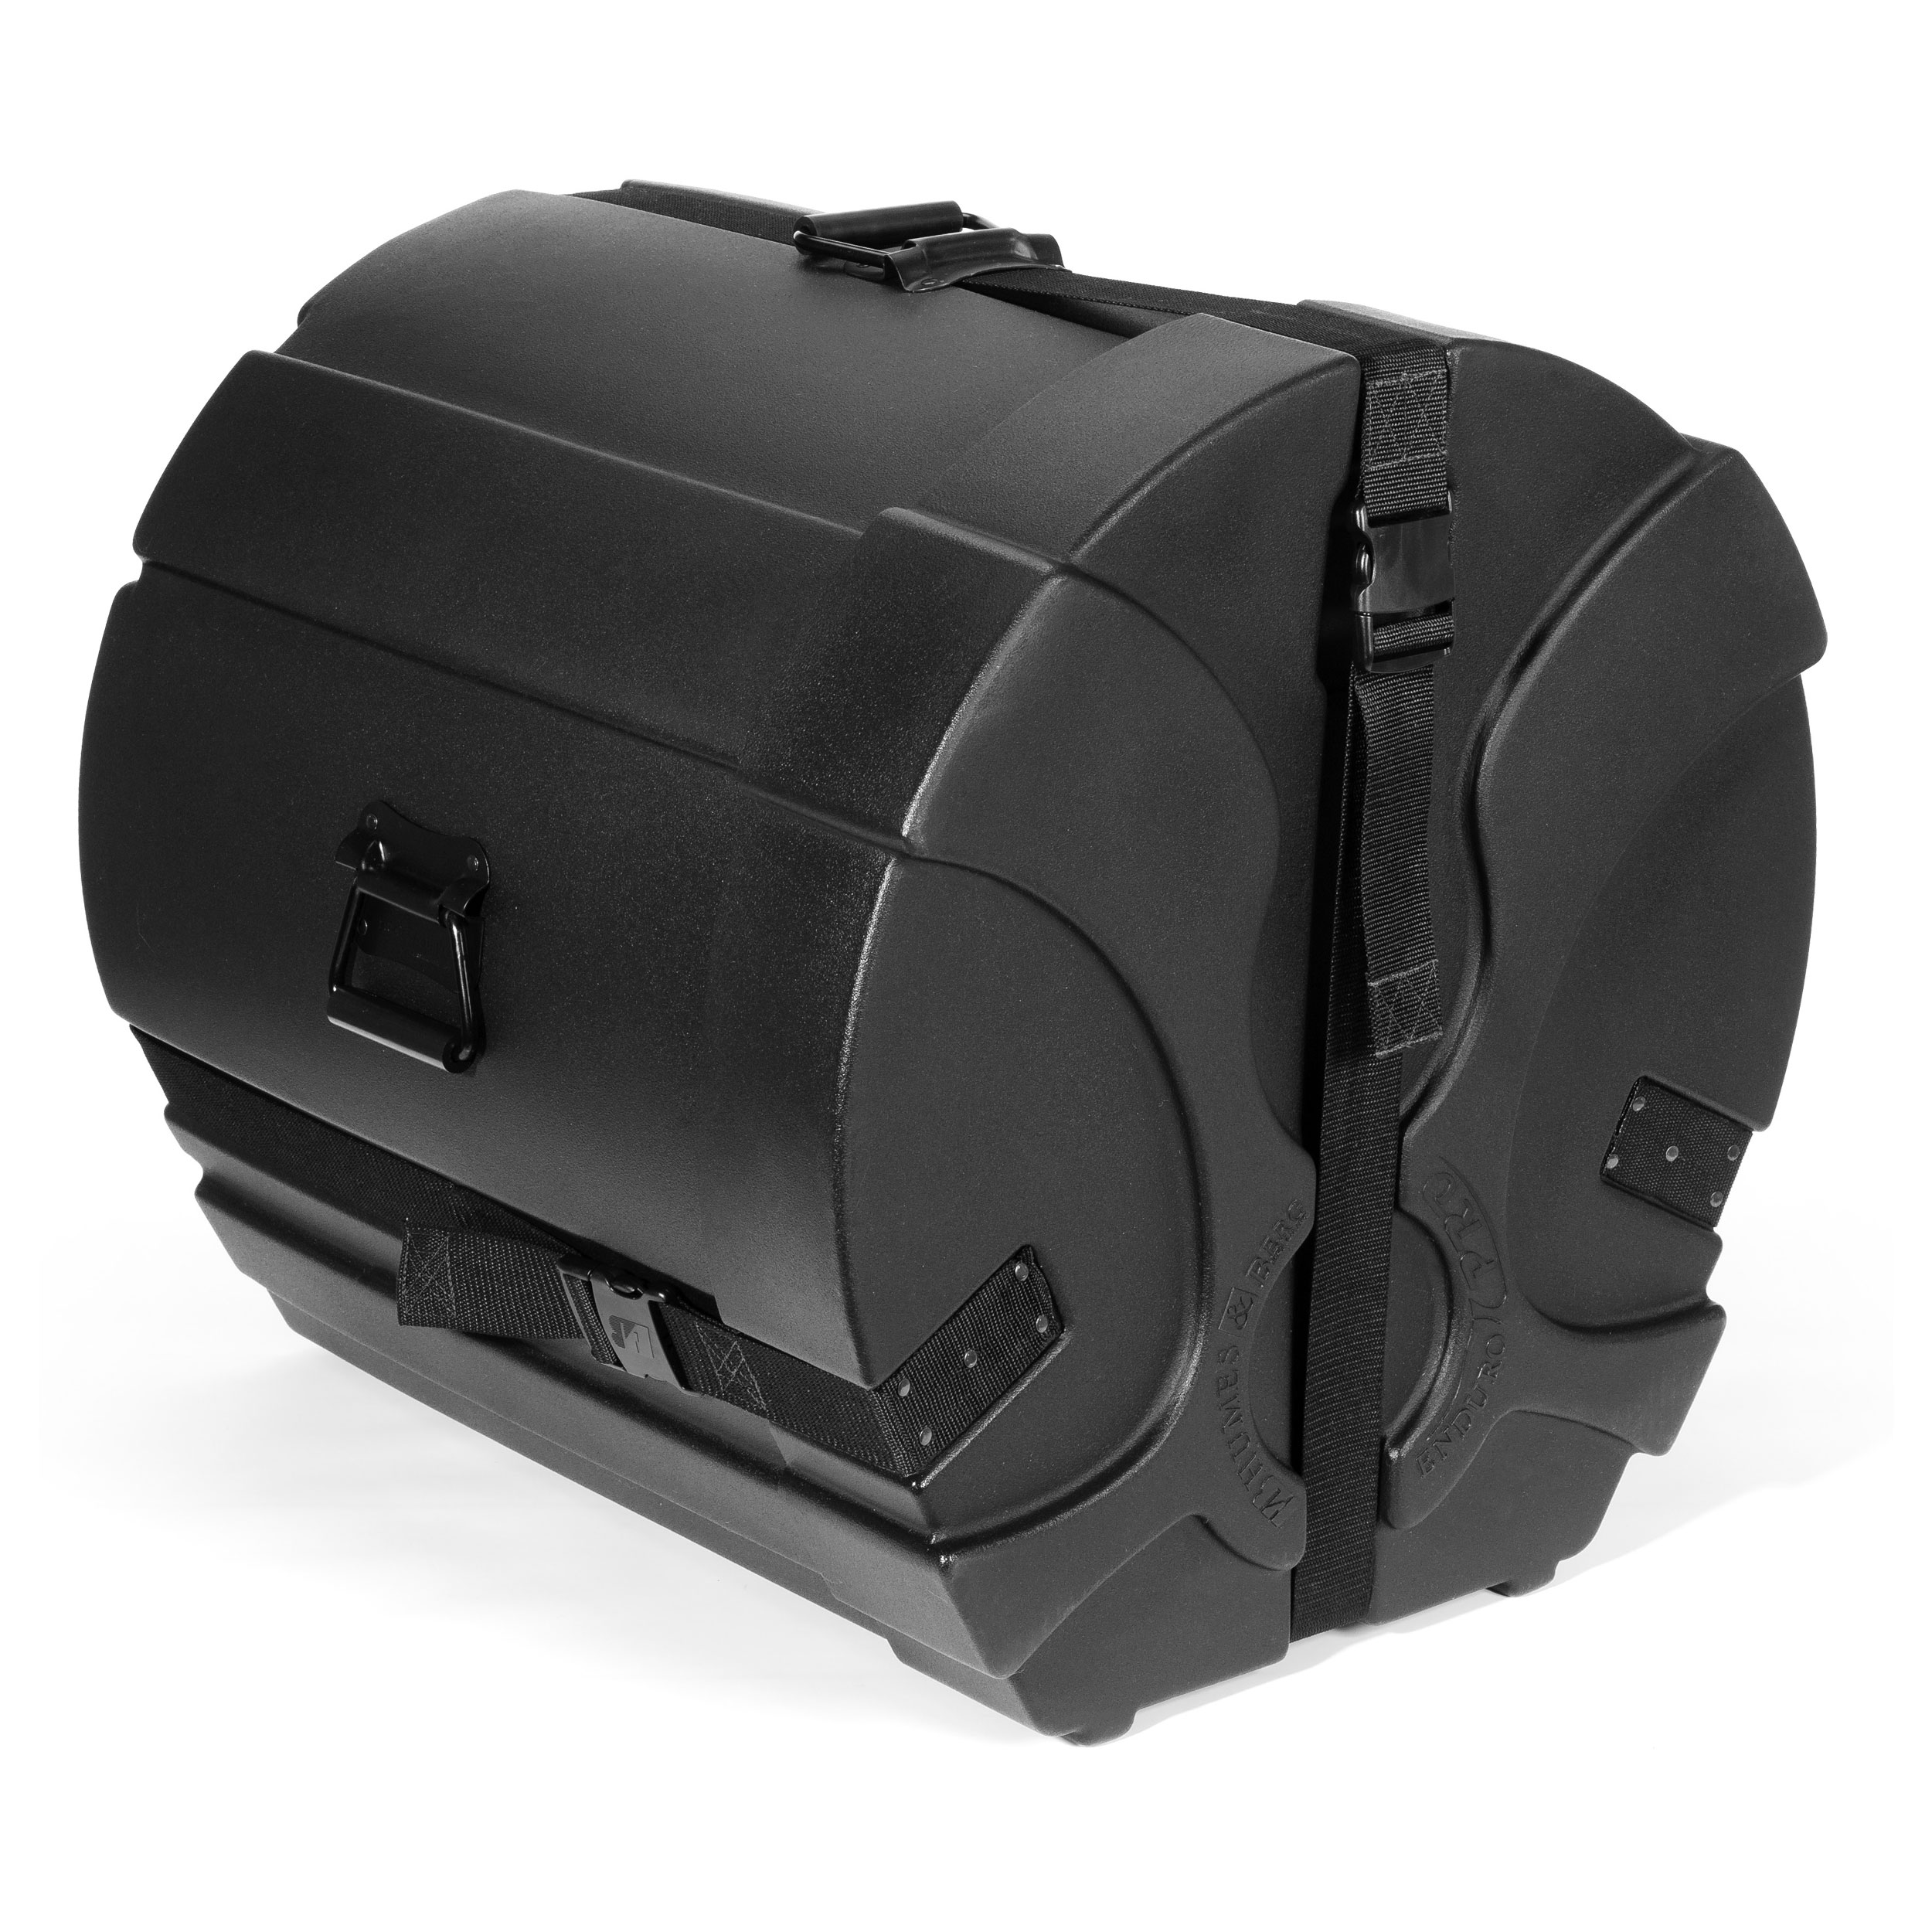 "Humes & Berg 14"" (Deep) x 24"" (Diameter) Enduro Pro Bass Case"